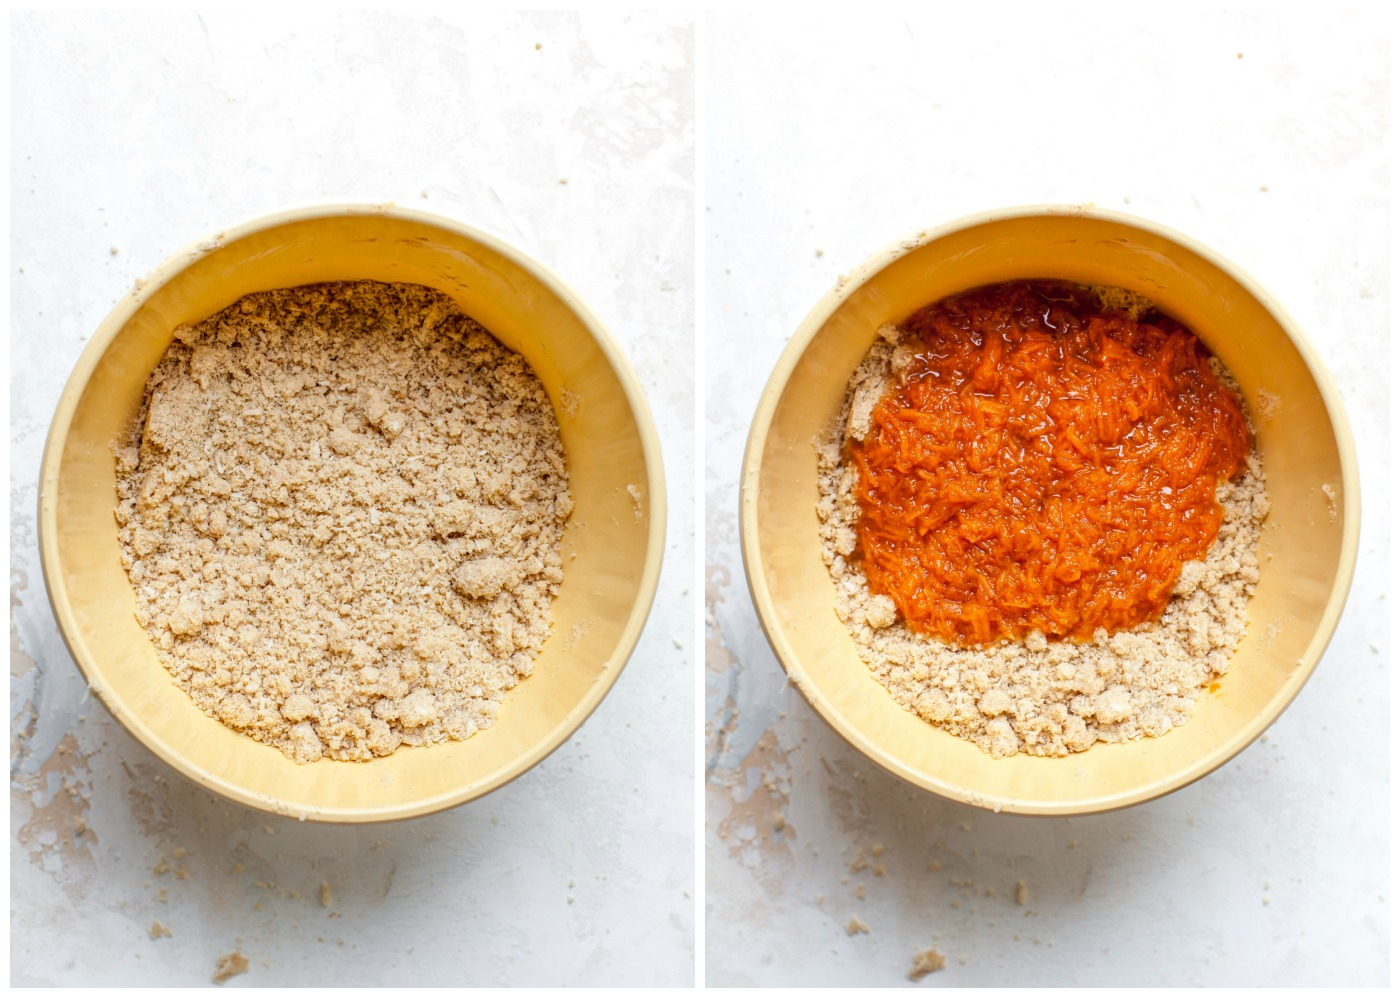 Step-by-step demonstration of mixing wet ingredients into dry ingredients